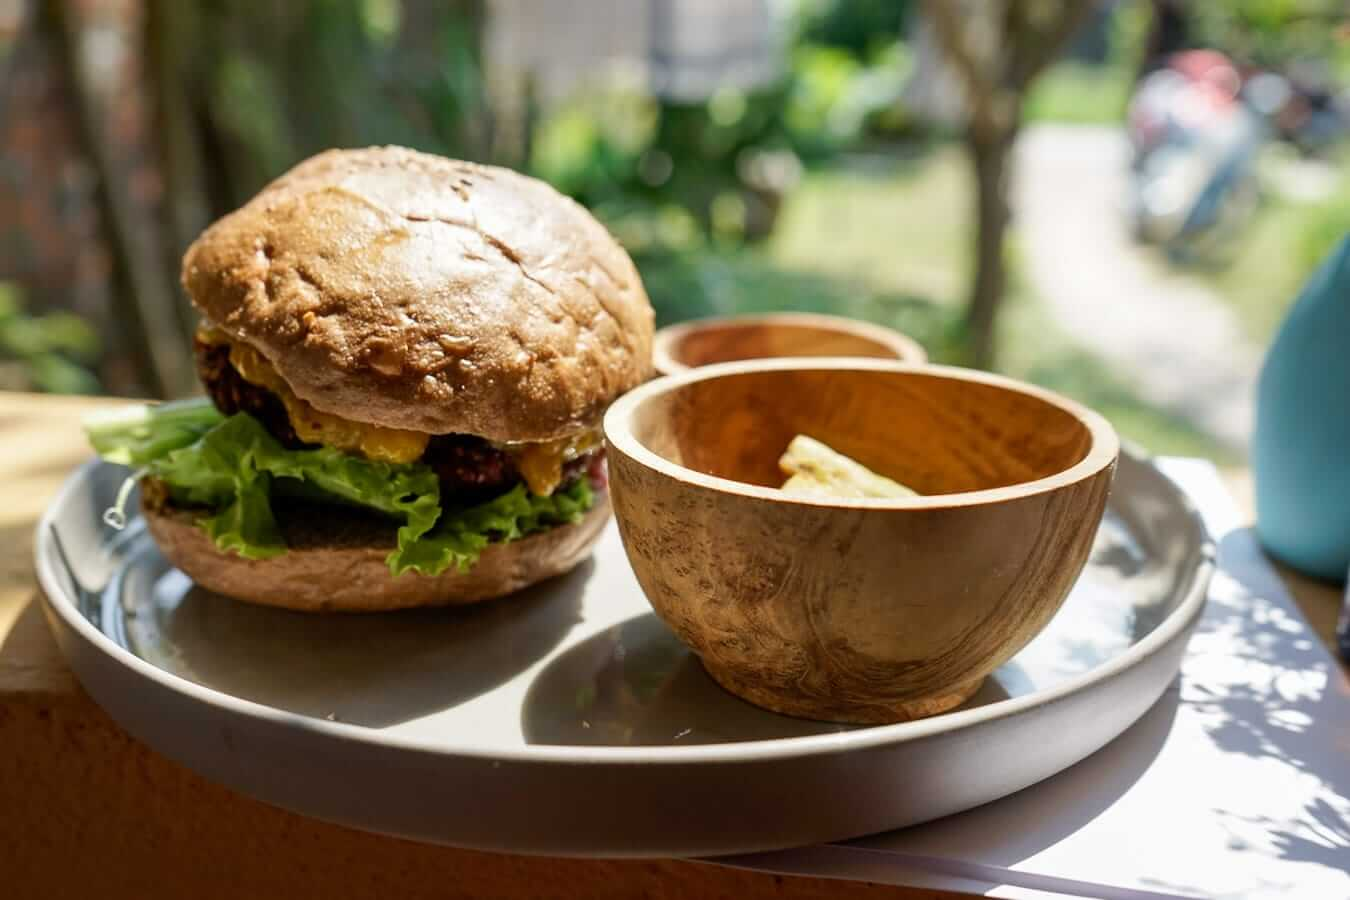 The vegetarian burger at Nourish Hoi An